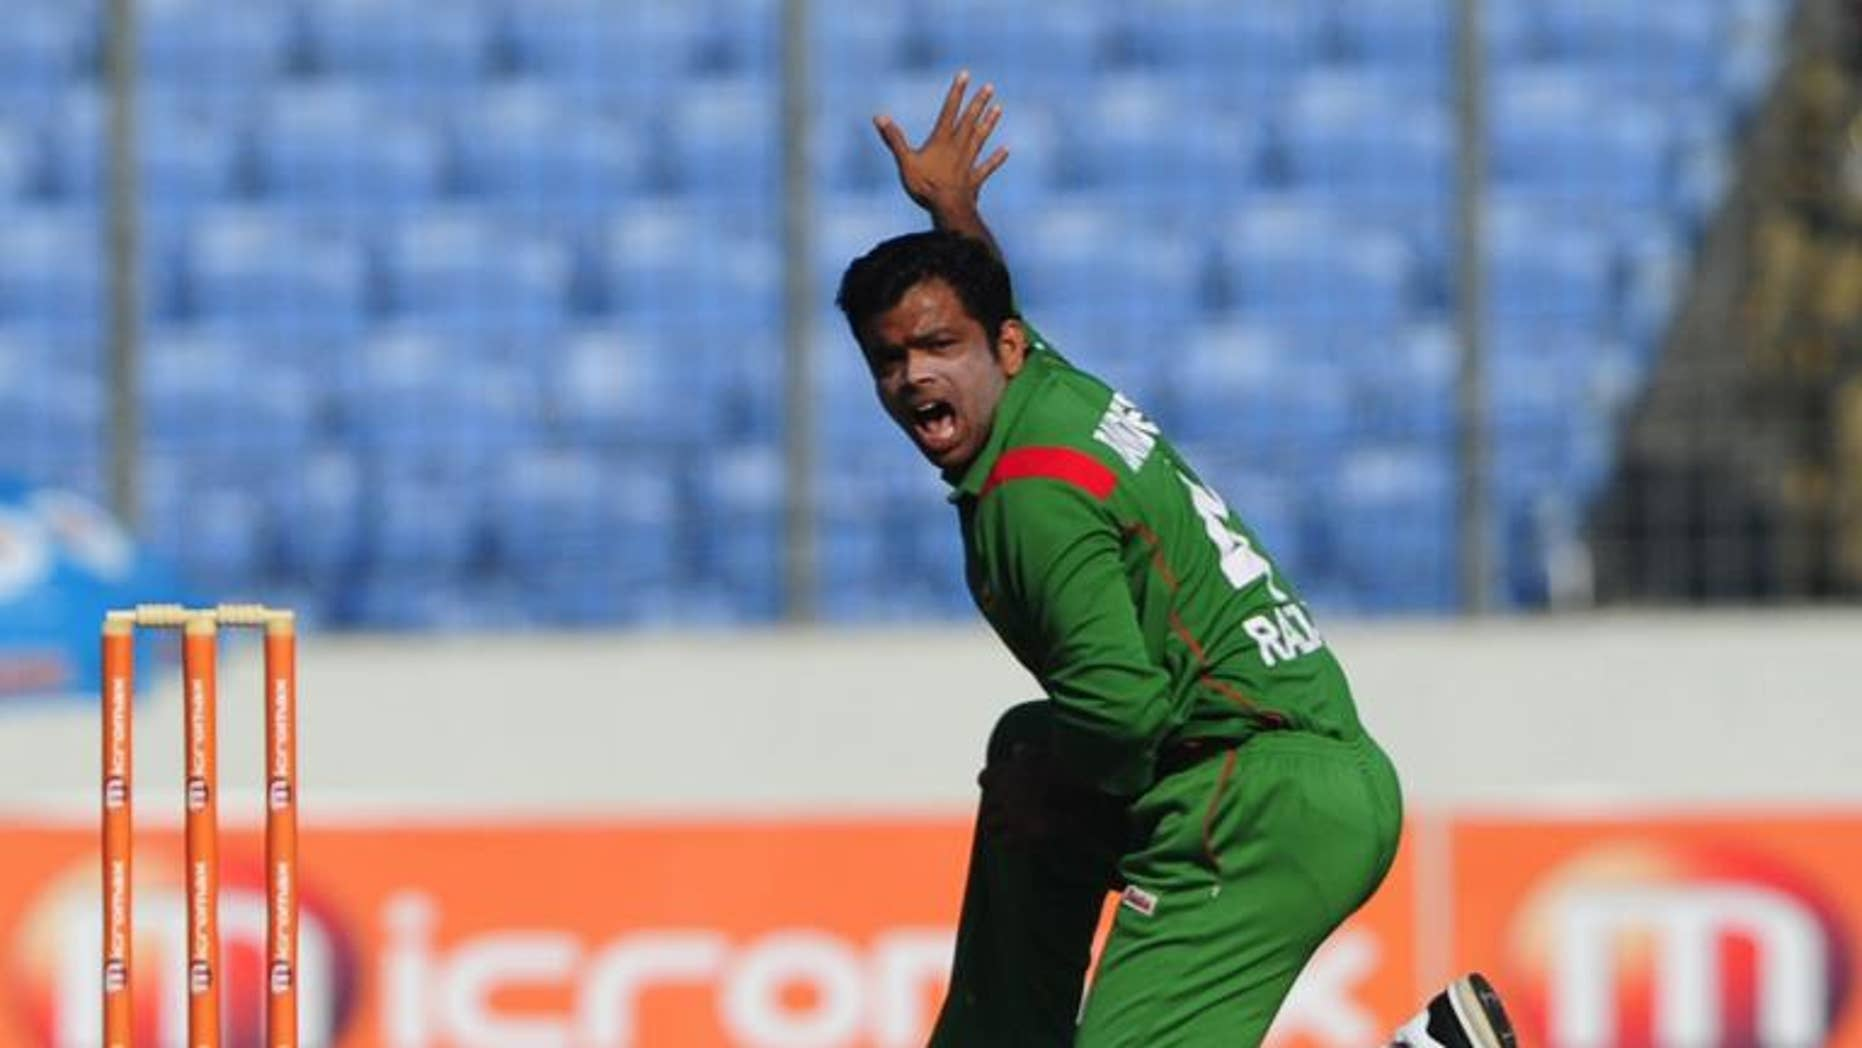 Bangladeshi spinner Abdur Razzak appeals for a leg before wicket (LBW) decision during a match against Zimbabwe in Dhaka on December 3, 2010